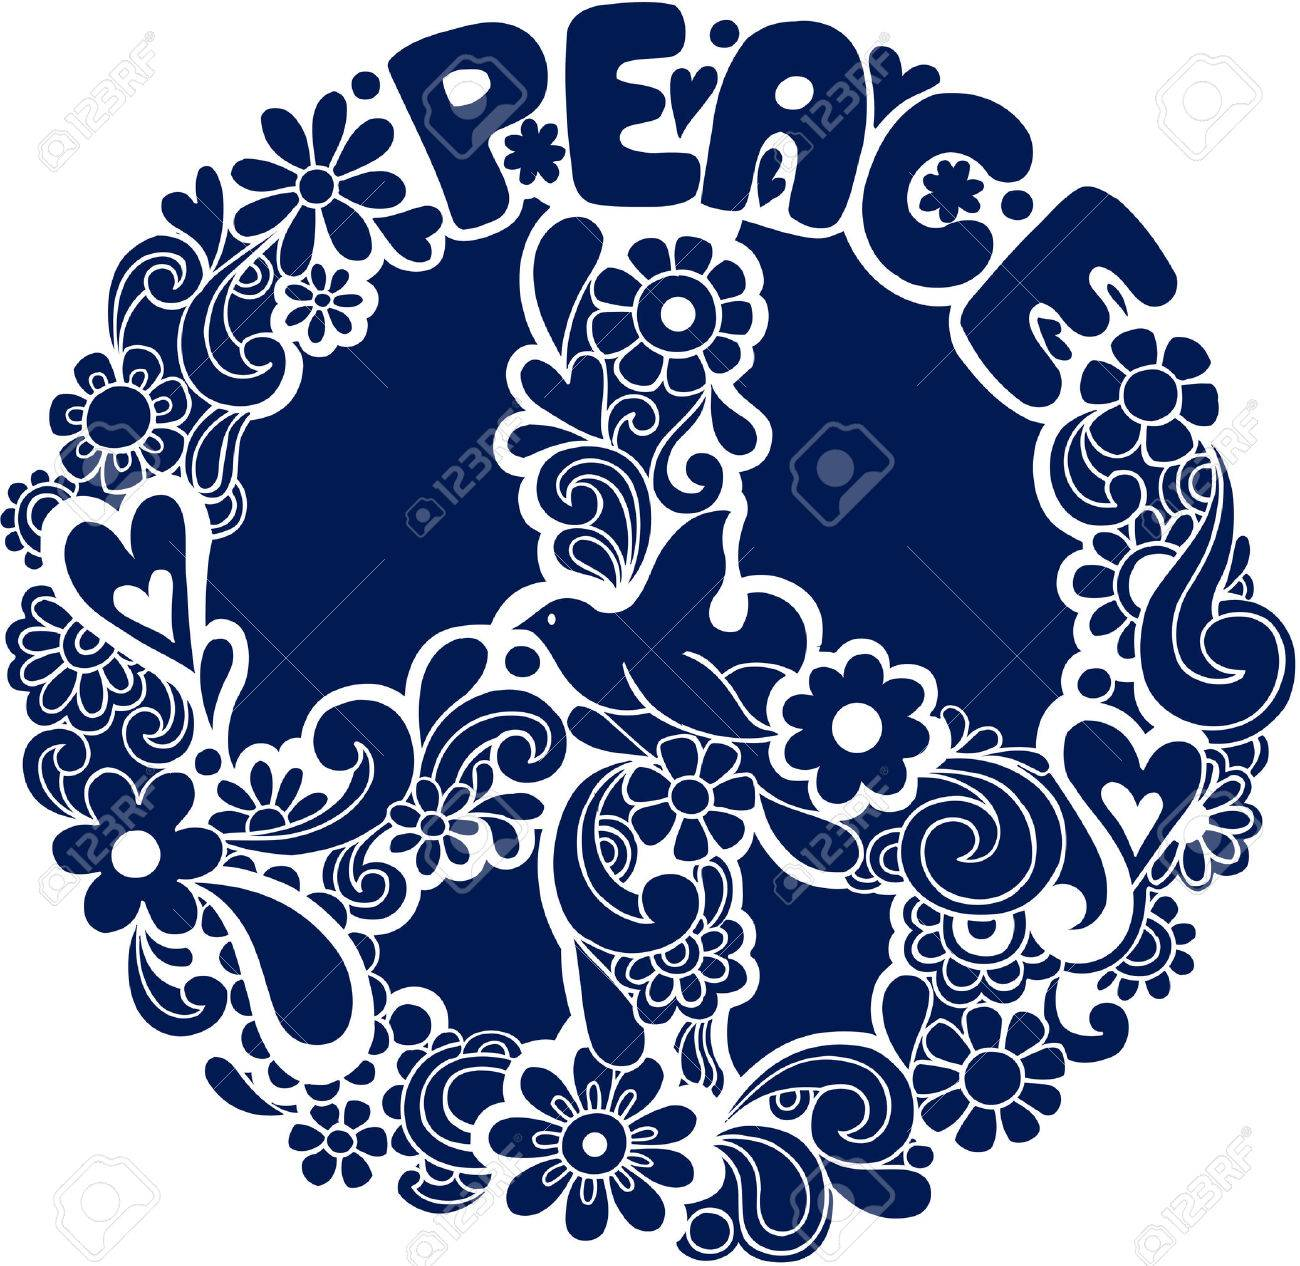 Psychedelic Peace Sign with Dove Silhouette Vector Illustration Stock Vector - 3668433